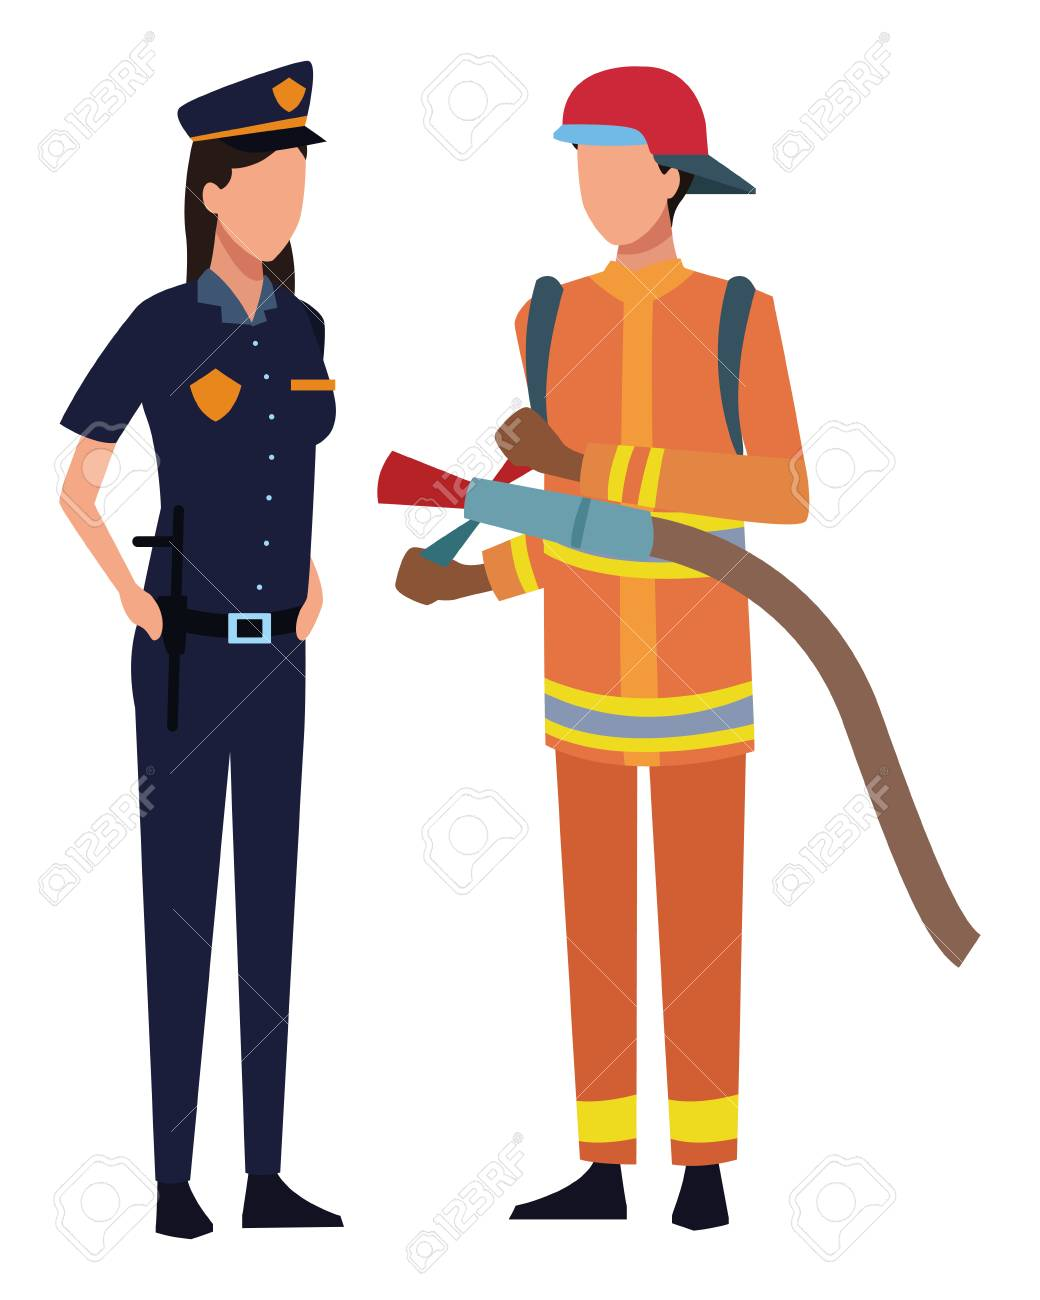 Jobs and professions police and firefighter avatar vector illustration